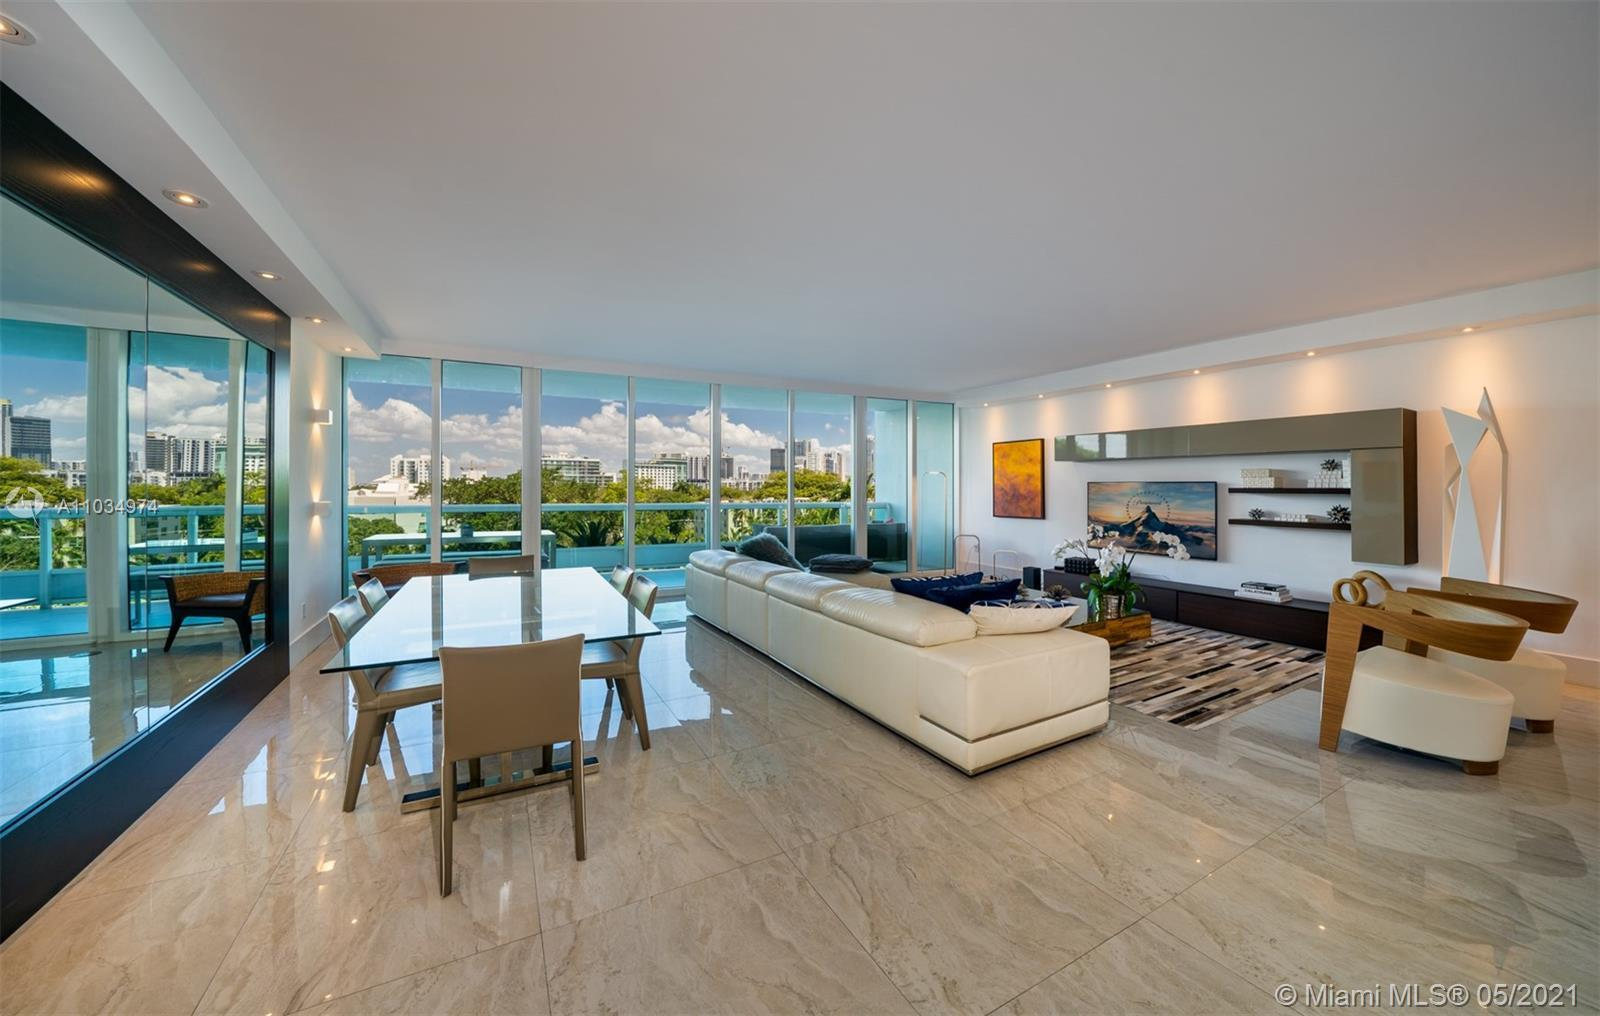 Spectacular totally upgraded and remodeled residence. This 